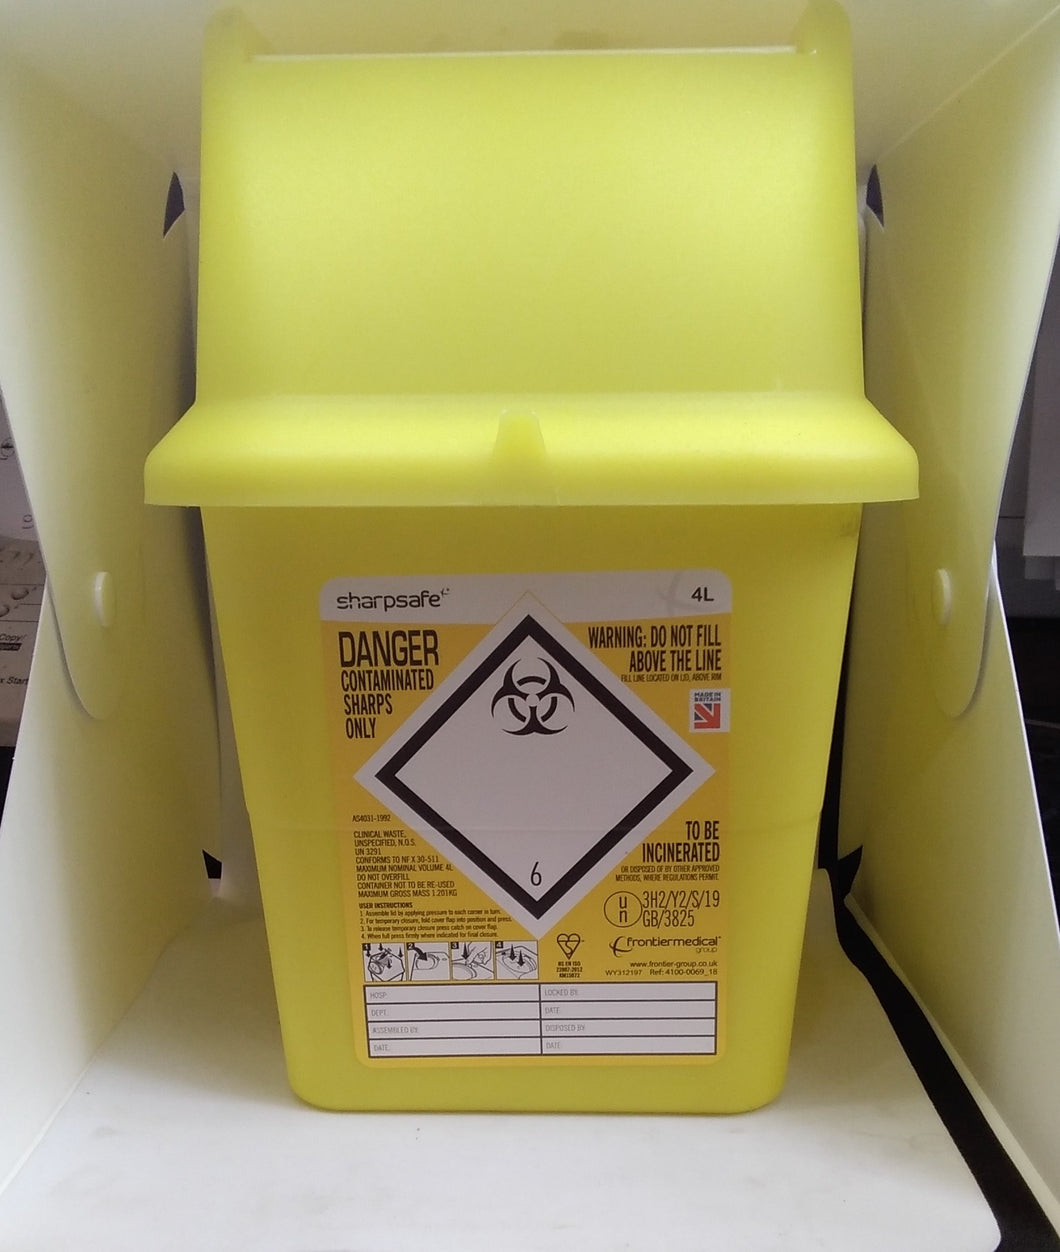 Sharpsafe Hazardous Box